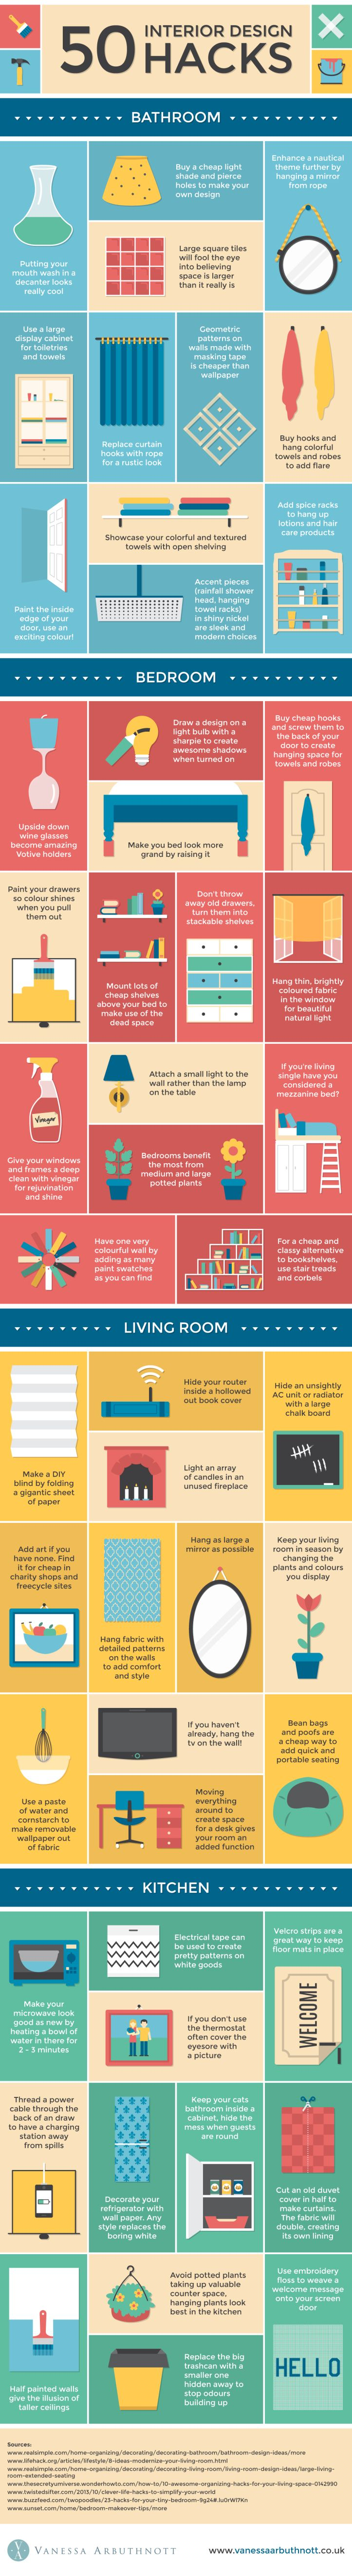 50 Interior Design Hacks #Infographic